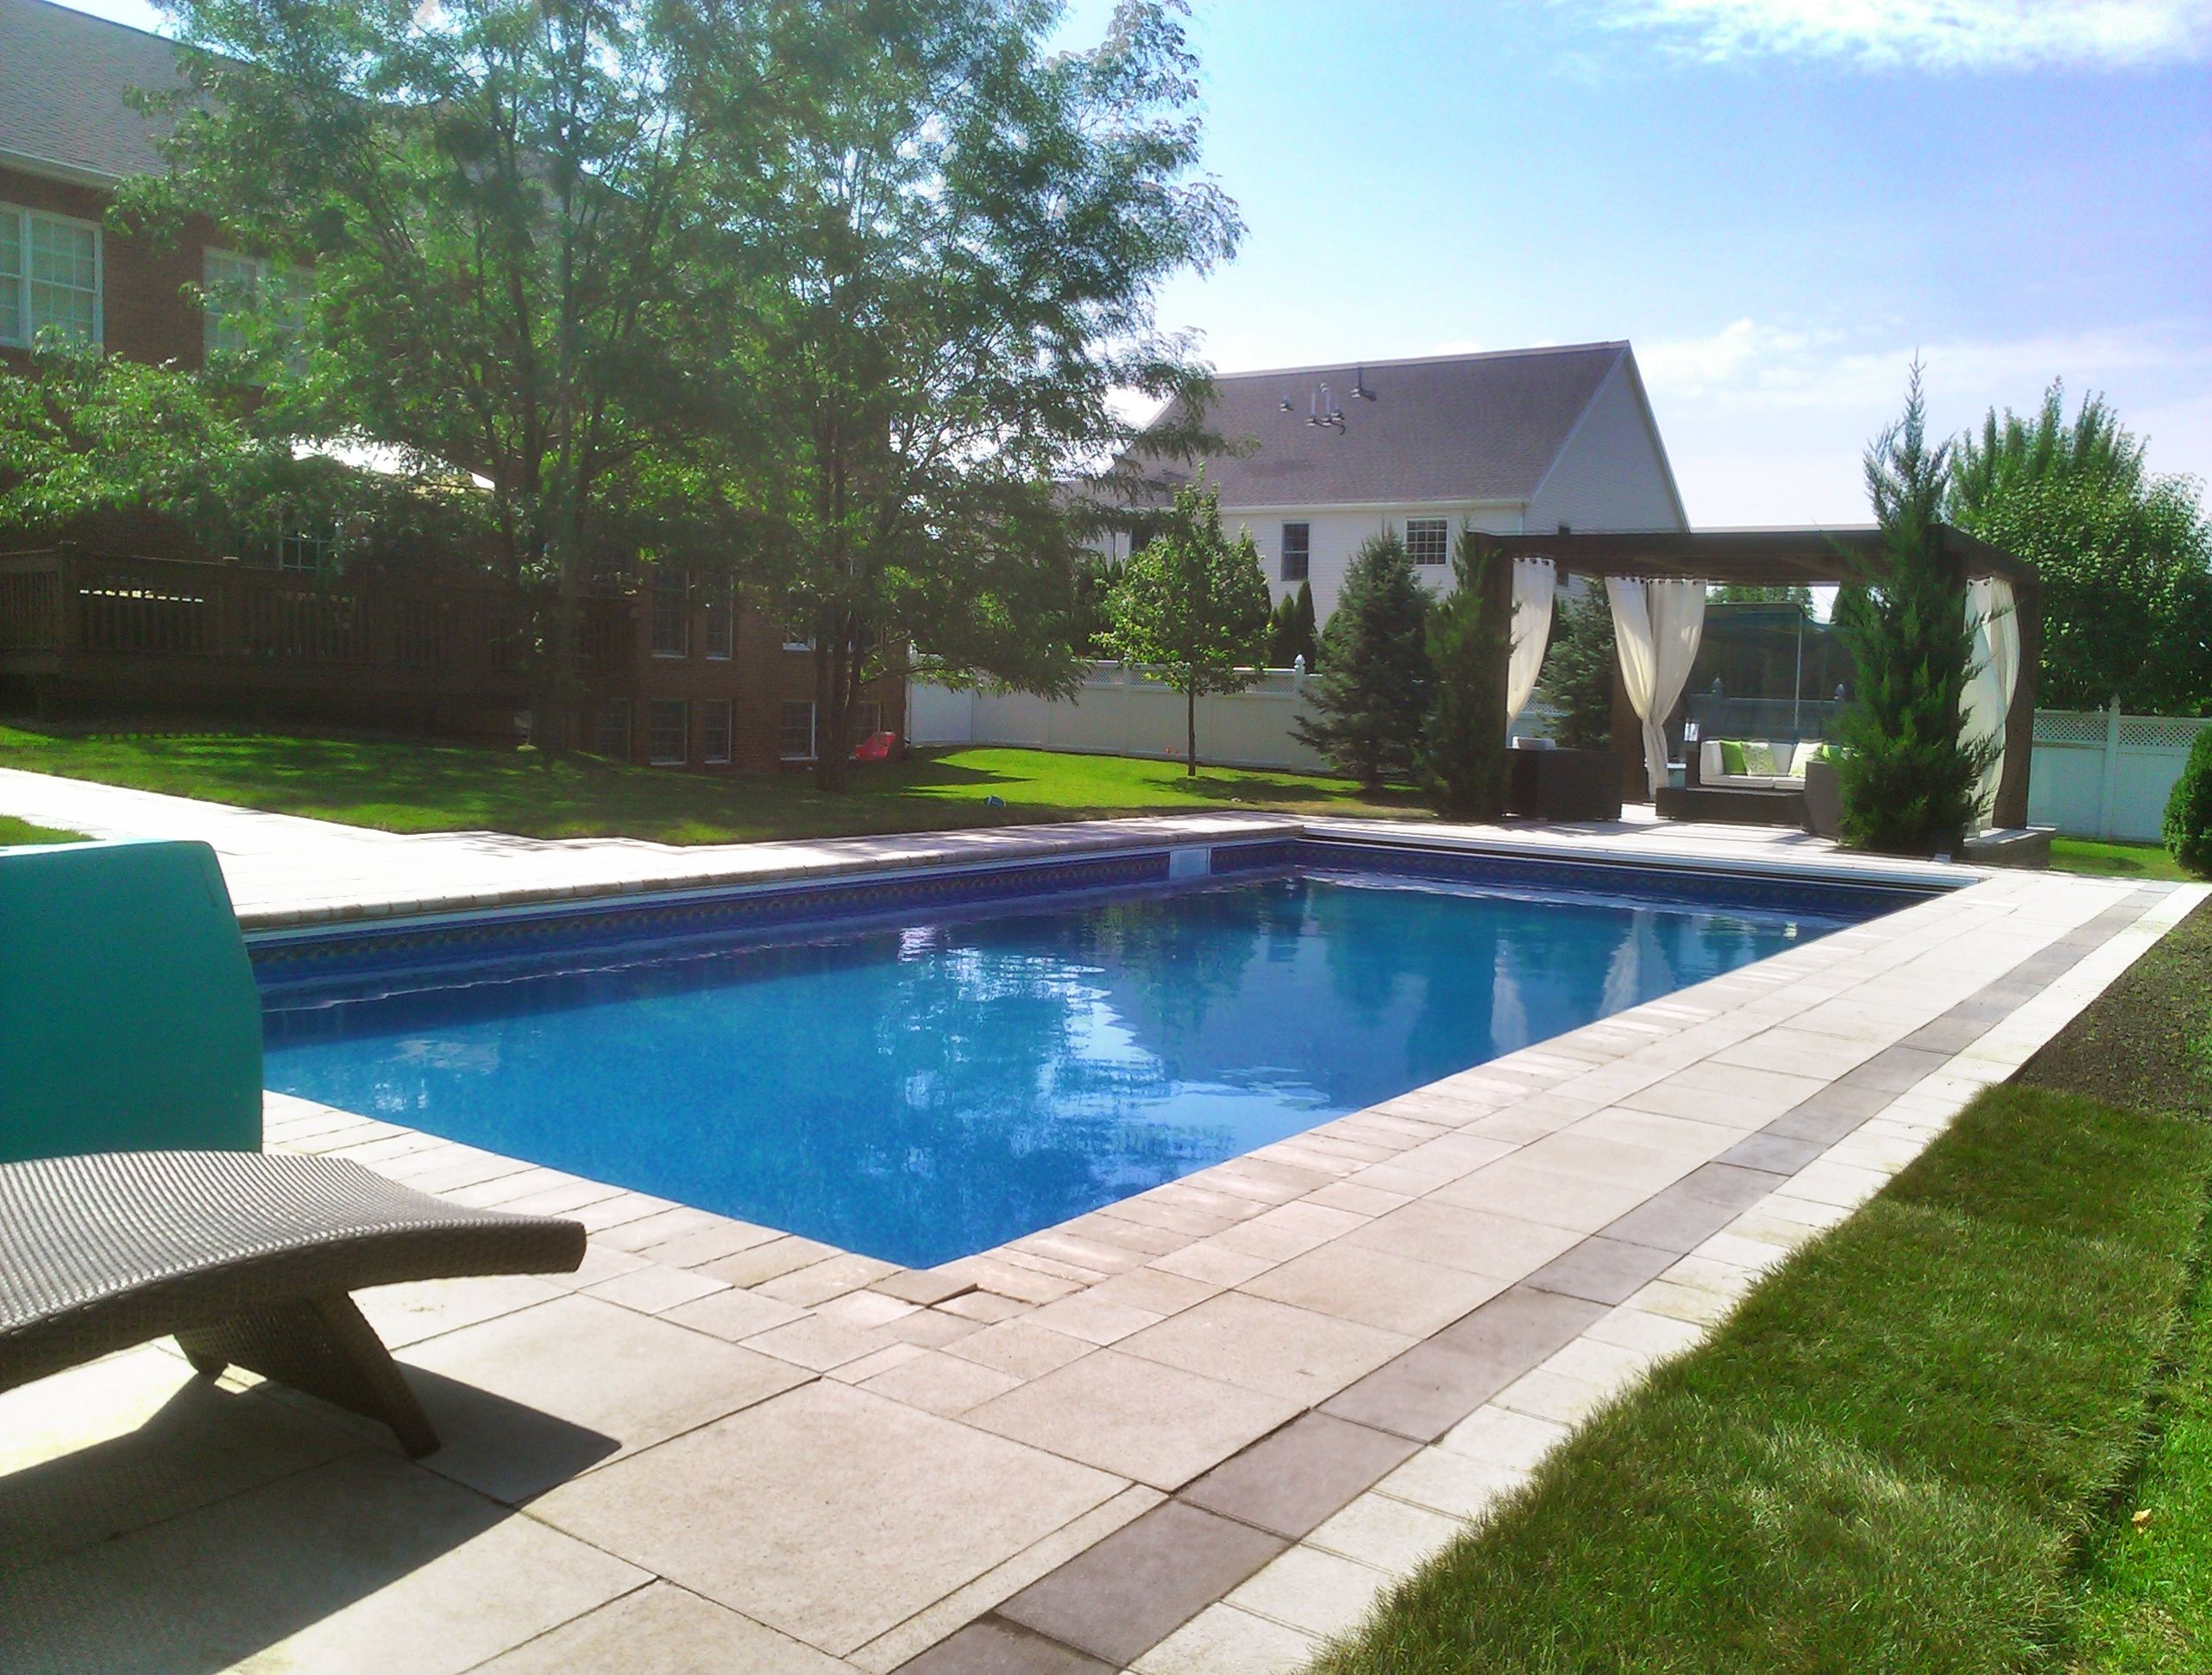 Great Pool Deck | Backyard, Outdoor living